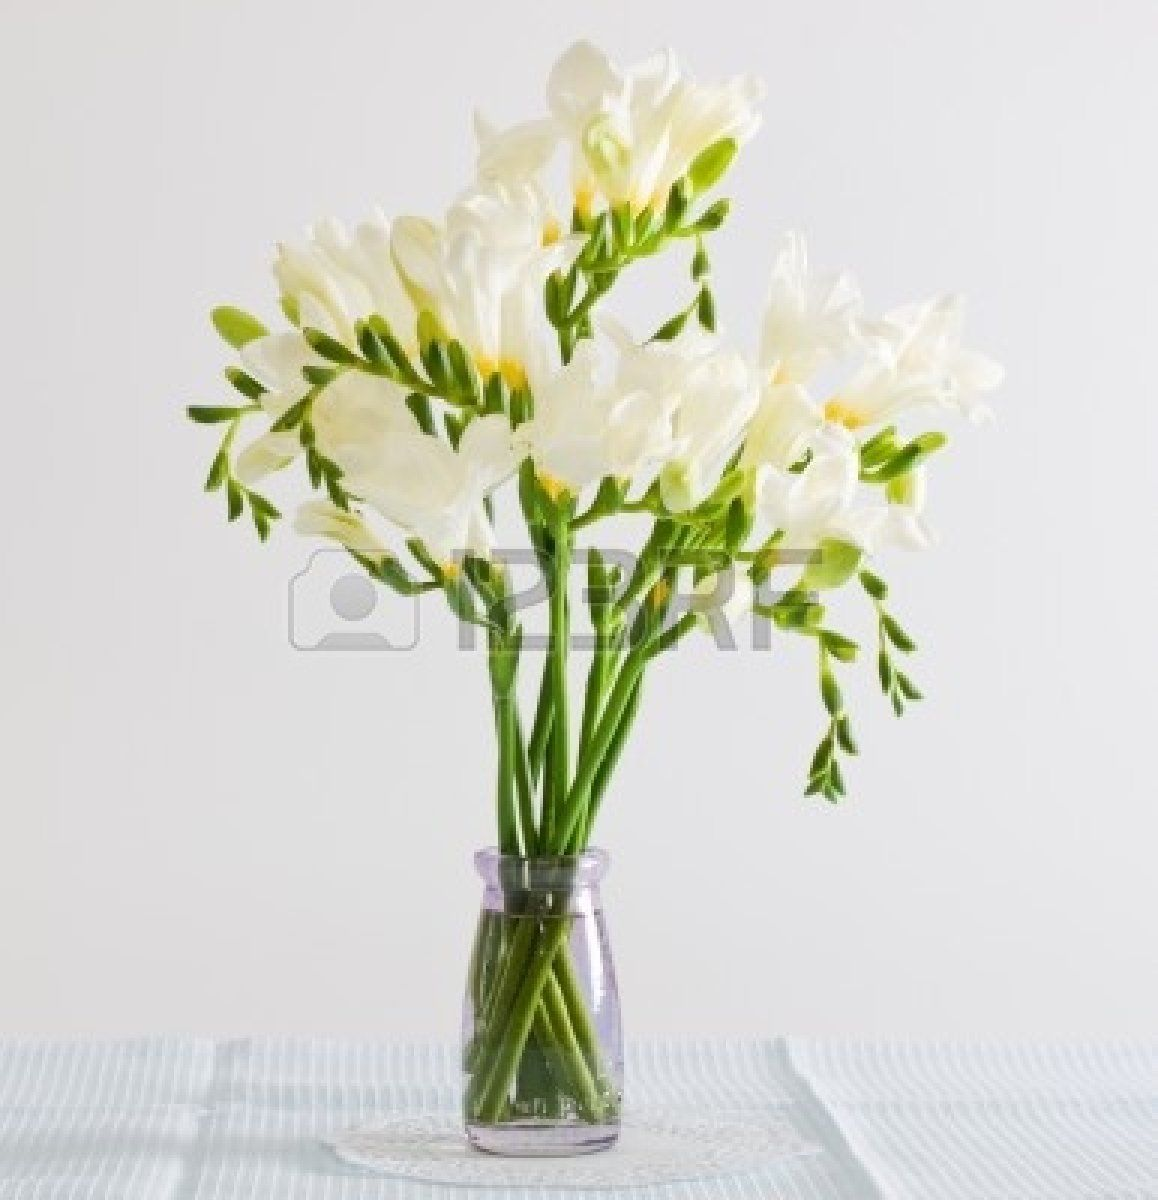 White freesia pinterest pinterest explore freesia bouquet bouquet flowers and more izmirmasajfo